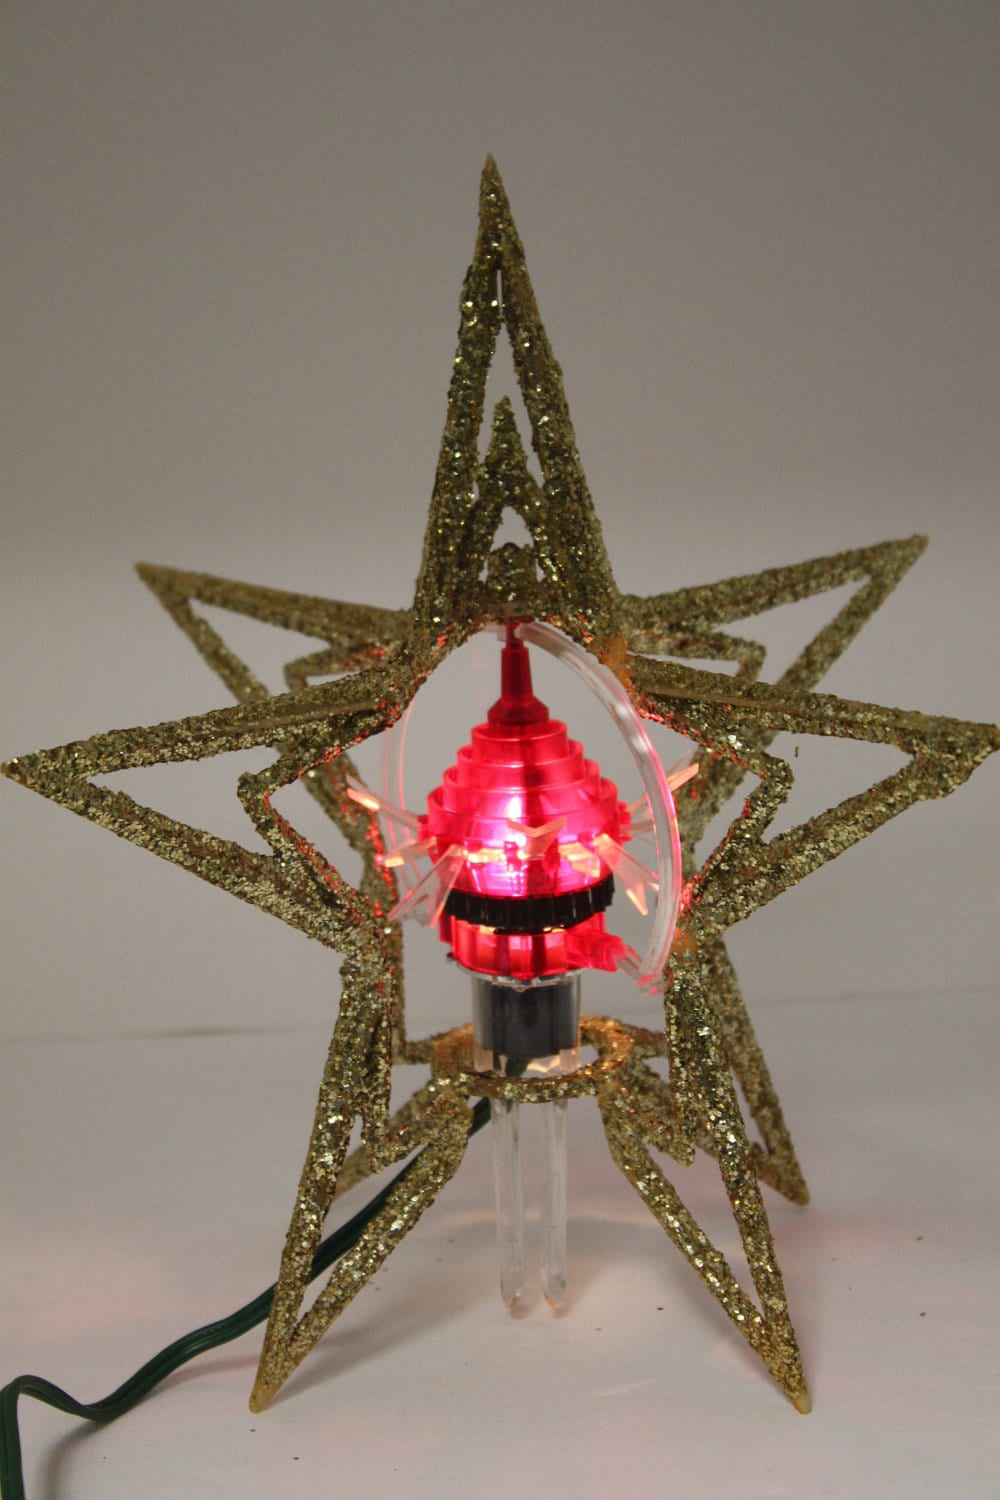 Vintage Merry Glow Rotating Spinning Christmas Tree Topper